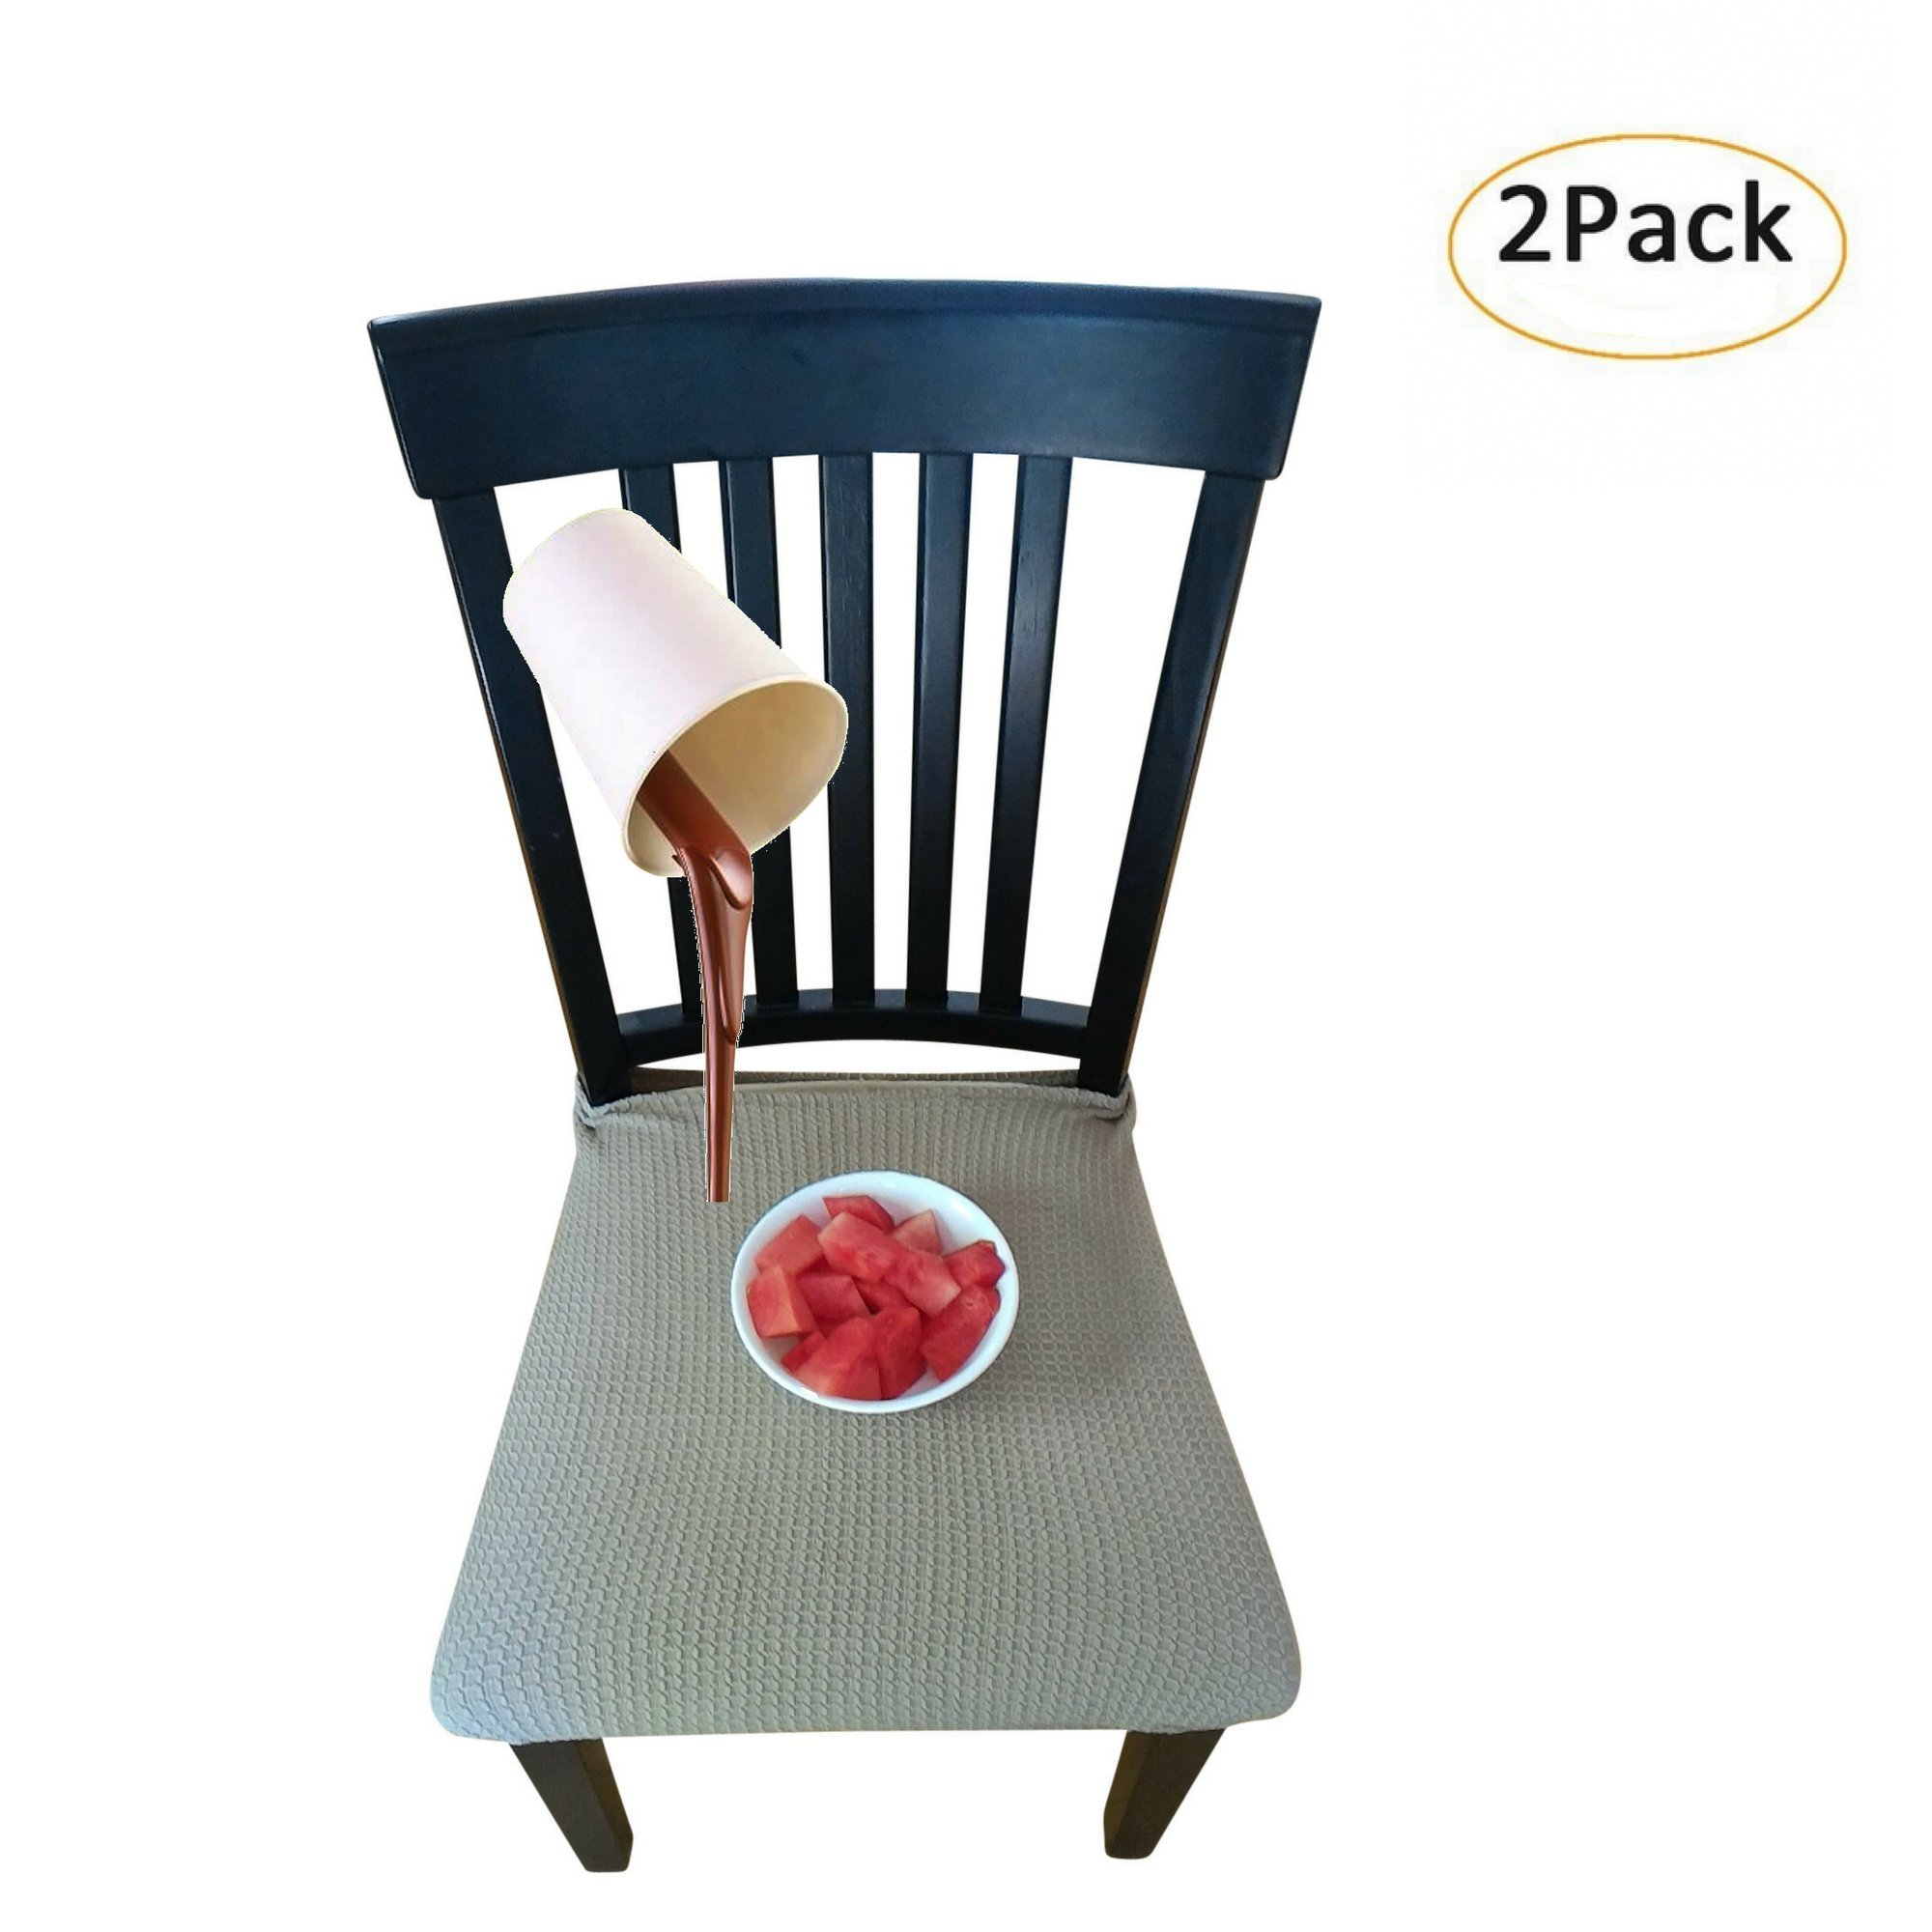 Waterproof Dining Chair Cover Protector - Pack of 2 - Perfect For Pets, Kids, Elderly, Restaurants, Party - Machine Washable, Elastic, Removable, Premium Quality, Clean the Mess Easily (Medium Brown) by RELIABEST